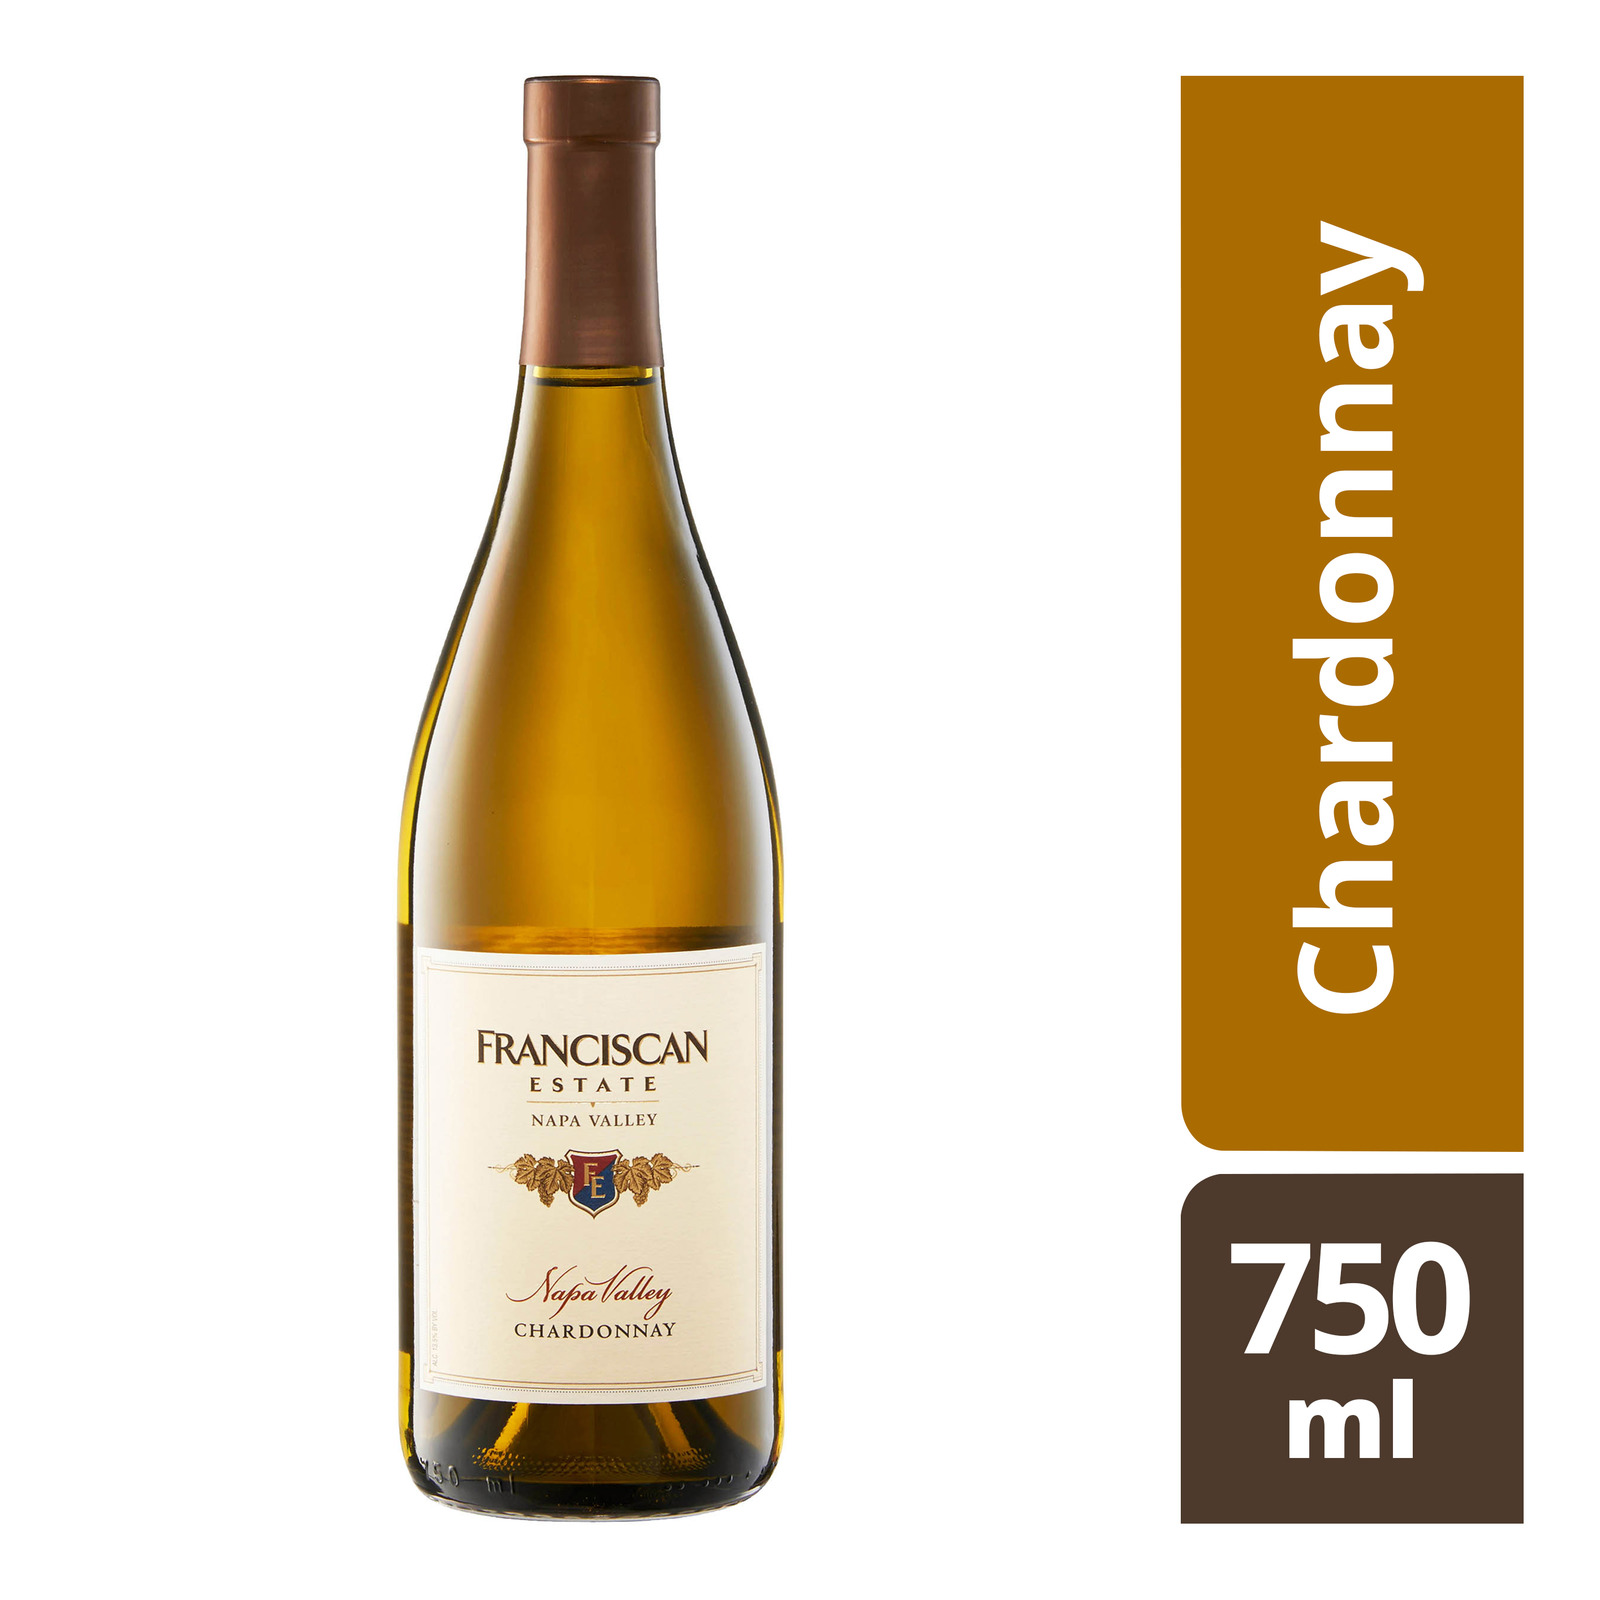 Franciscan Estate Napa Valley White Wine - Chardonnay